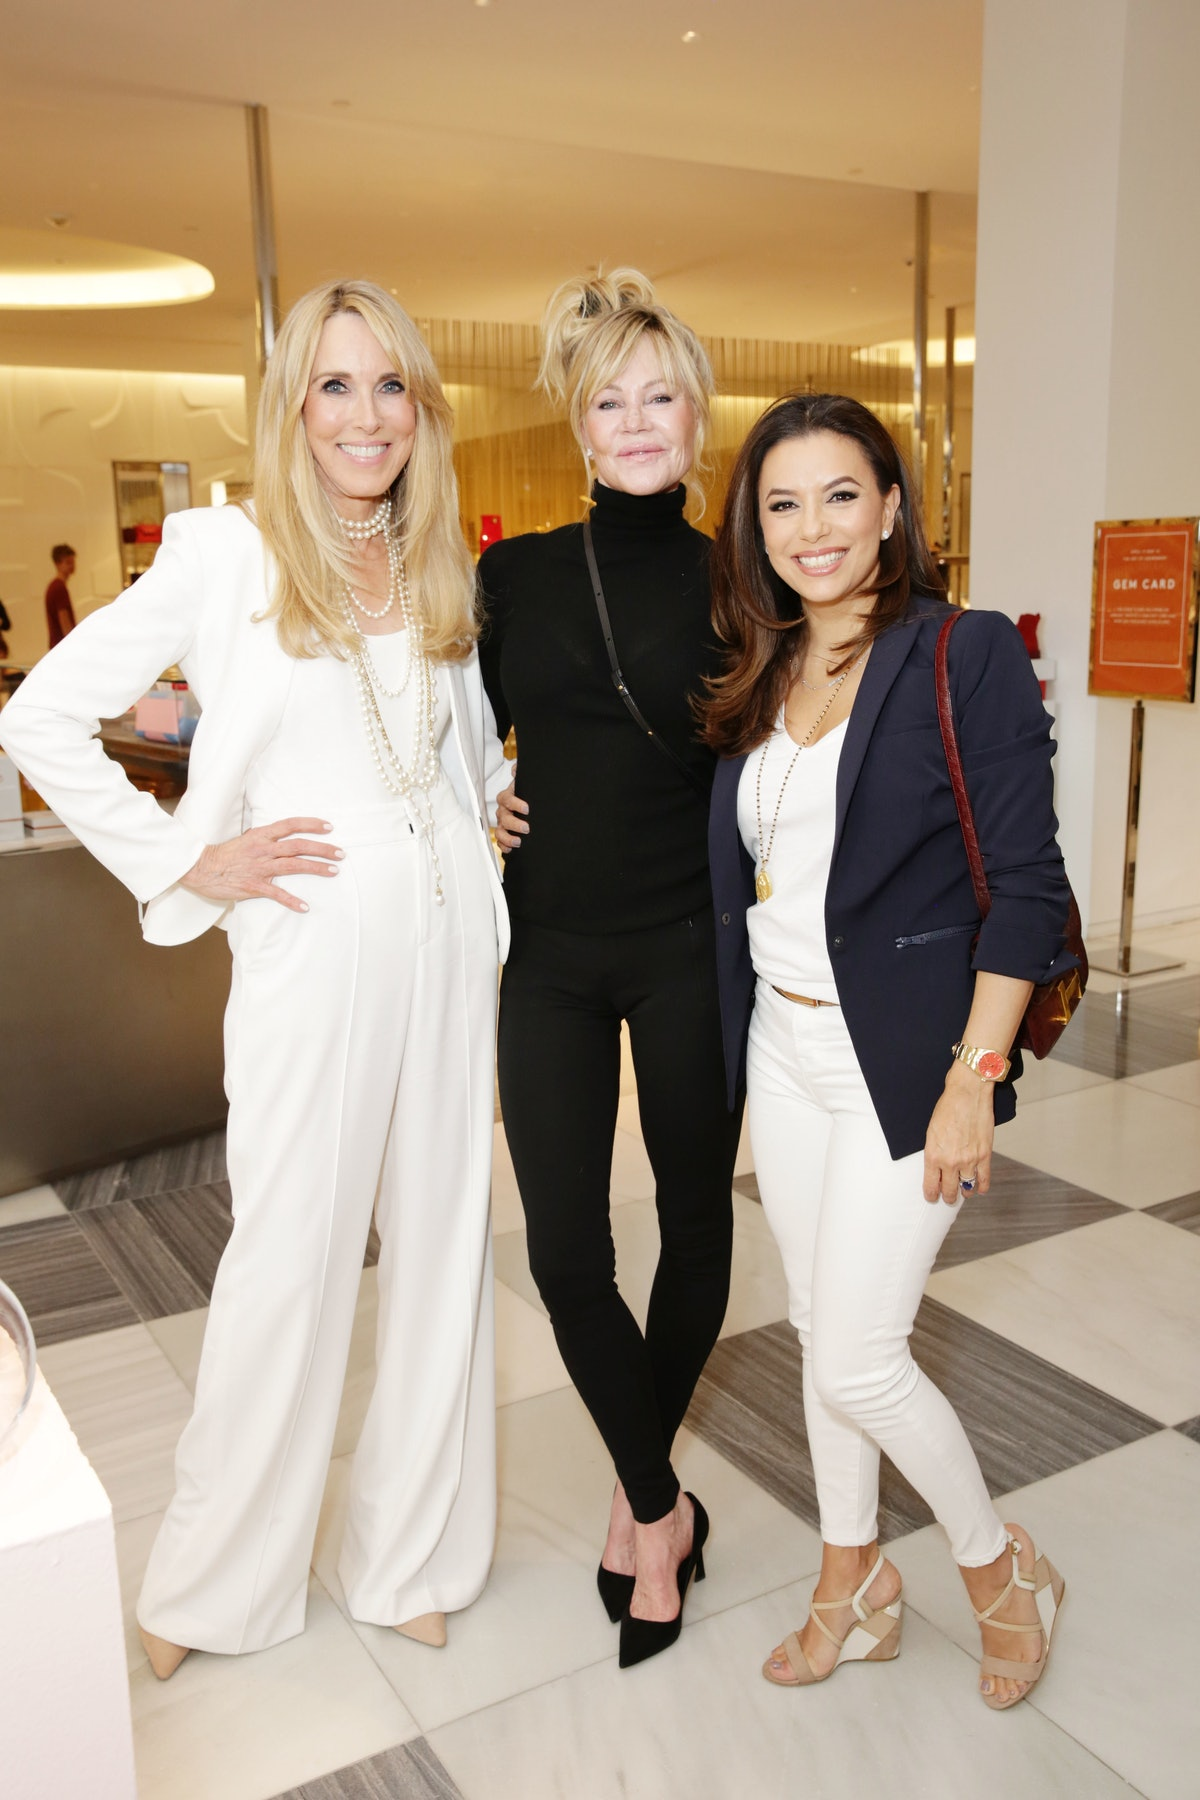 Barneys New York Hosts A Cocktail Party In Support Of The Farrah Fawcett Foundation